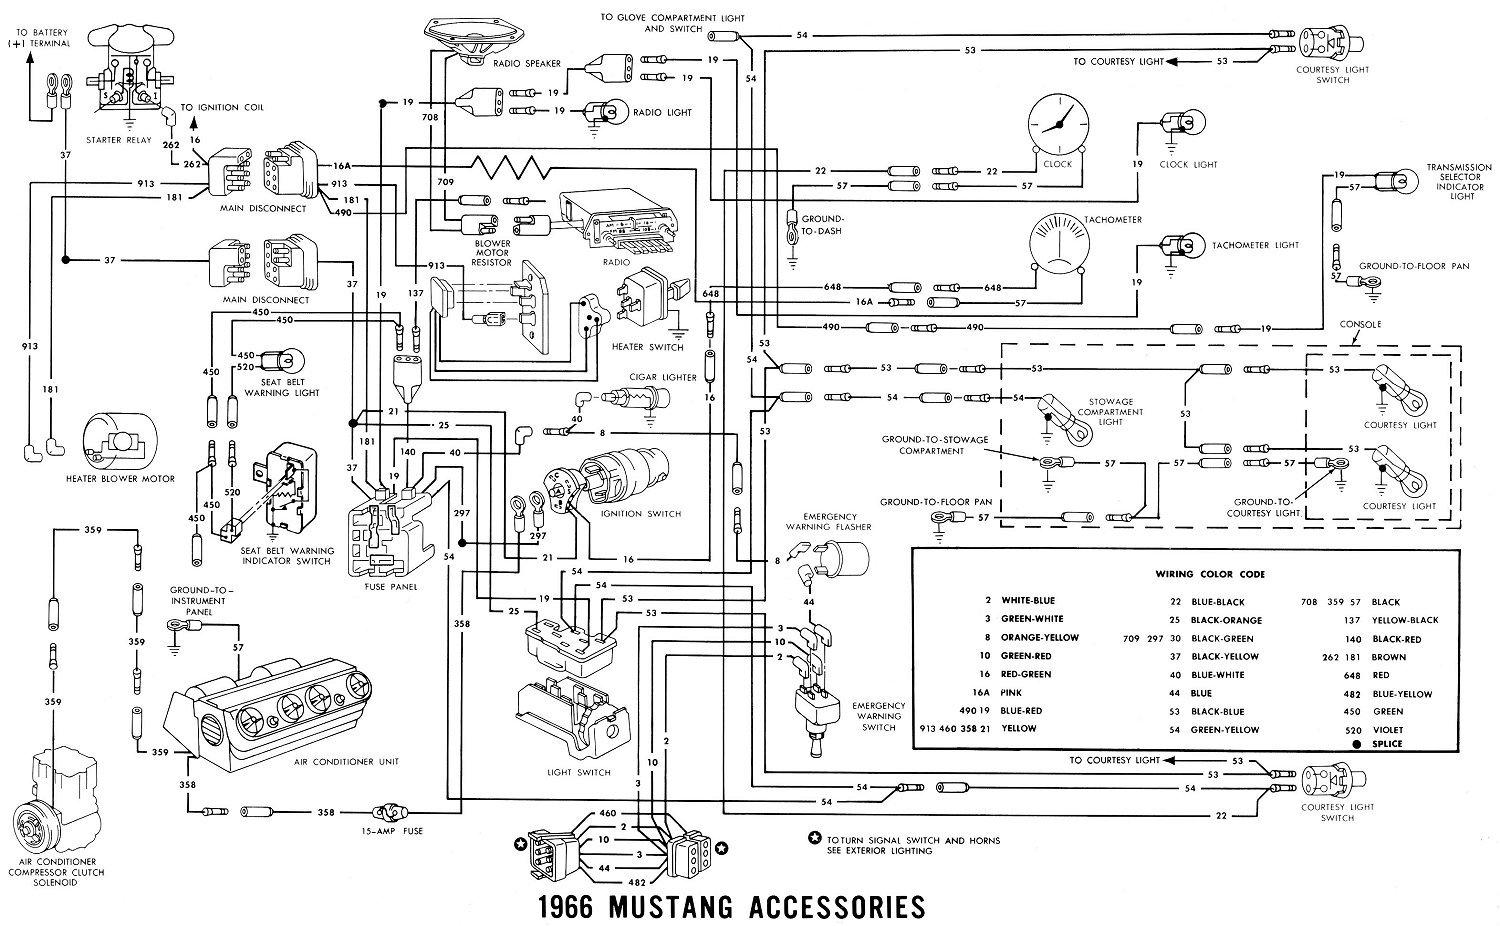 68 Mustang Master Wiring Diagram 1977 Ford F100 Schematics 70 Dash Blog About Diagrams Rh Clares Driving Co Uk Alternator